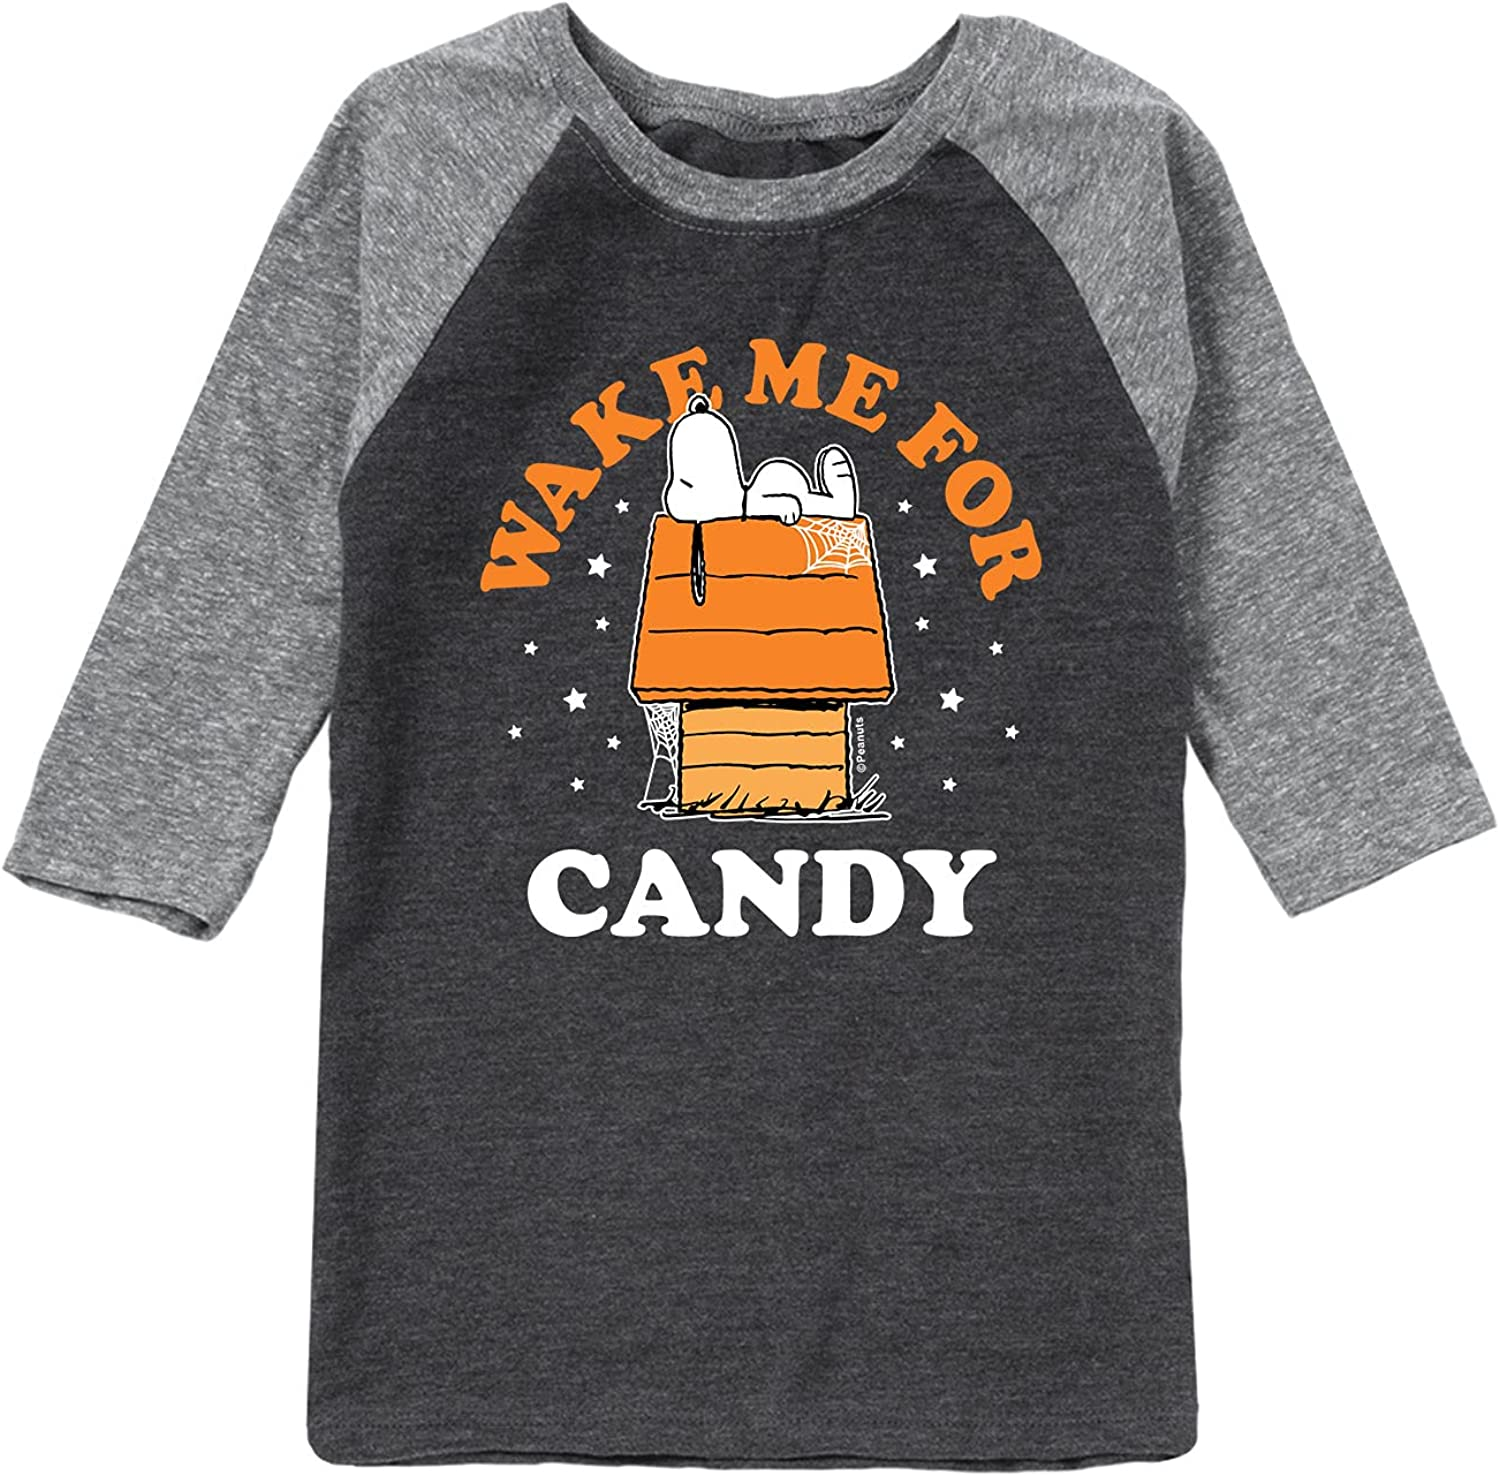 Peanuts - Wake Me for Candy - Toddler and Youth Raglan Graphic T-Shirt